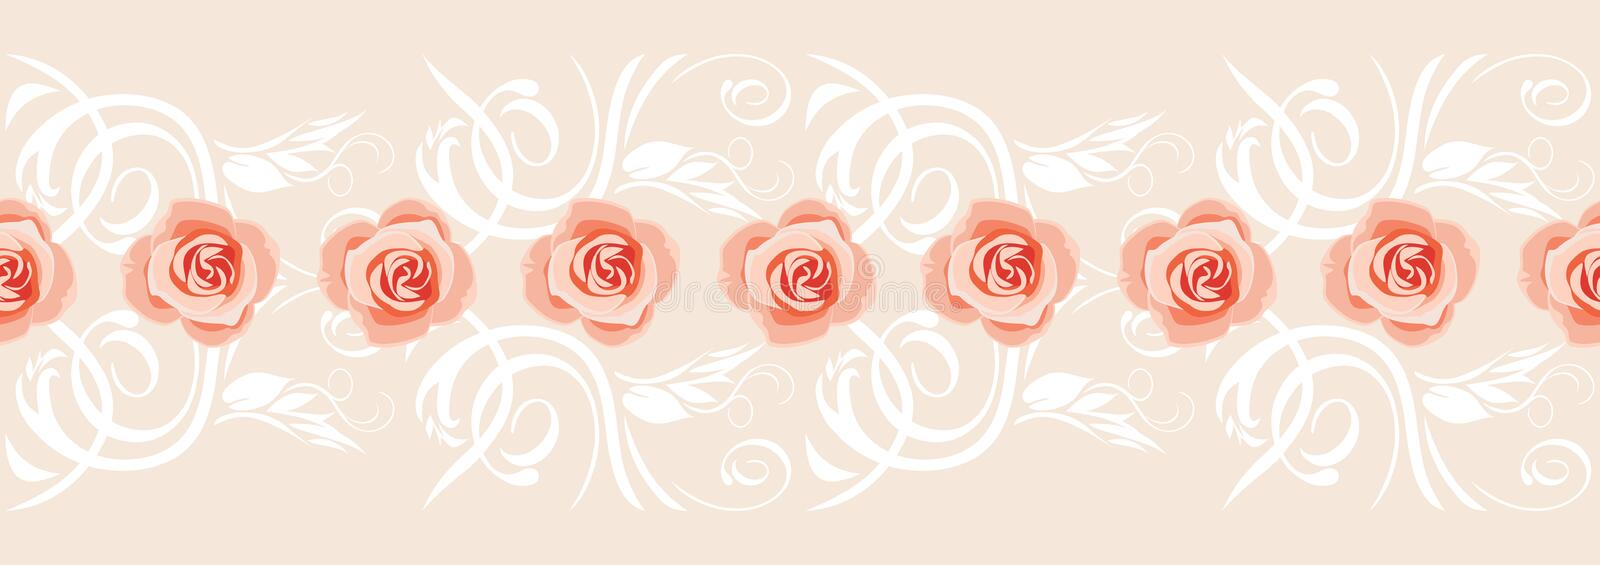 Decorative border with pink roses for greeting card royalty free stock photography